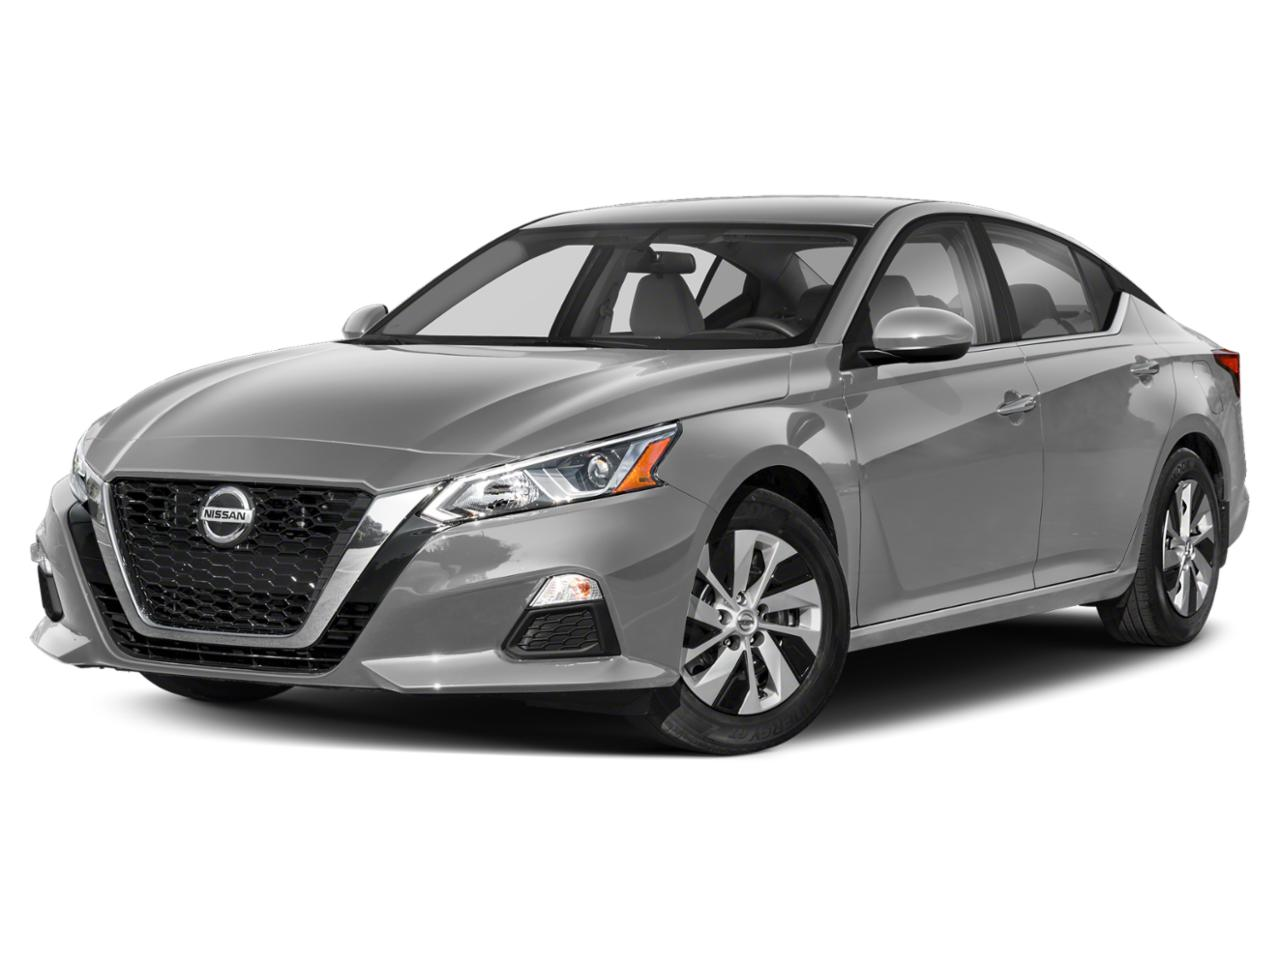 2019 Nissan Altima Vehicle Photo in Baton Rouge, LA 70806